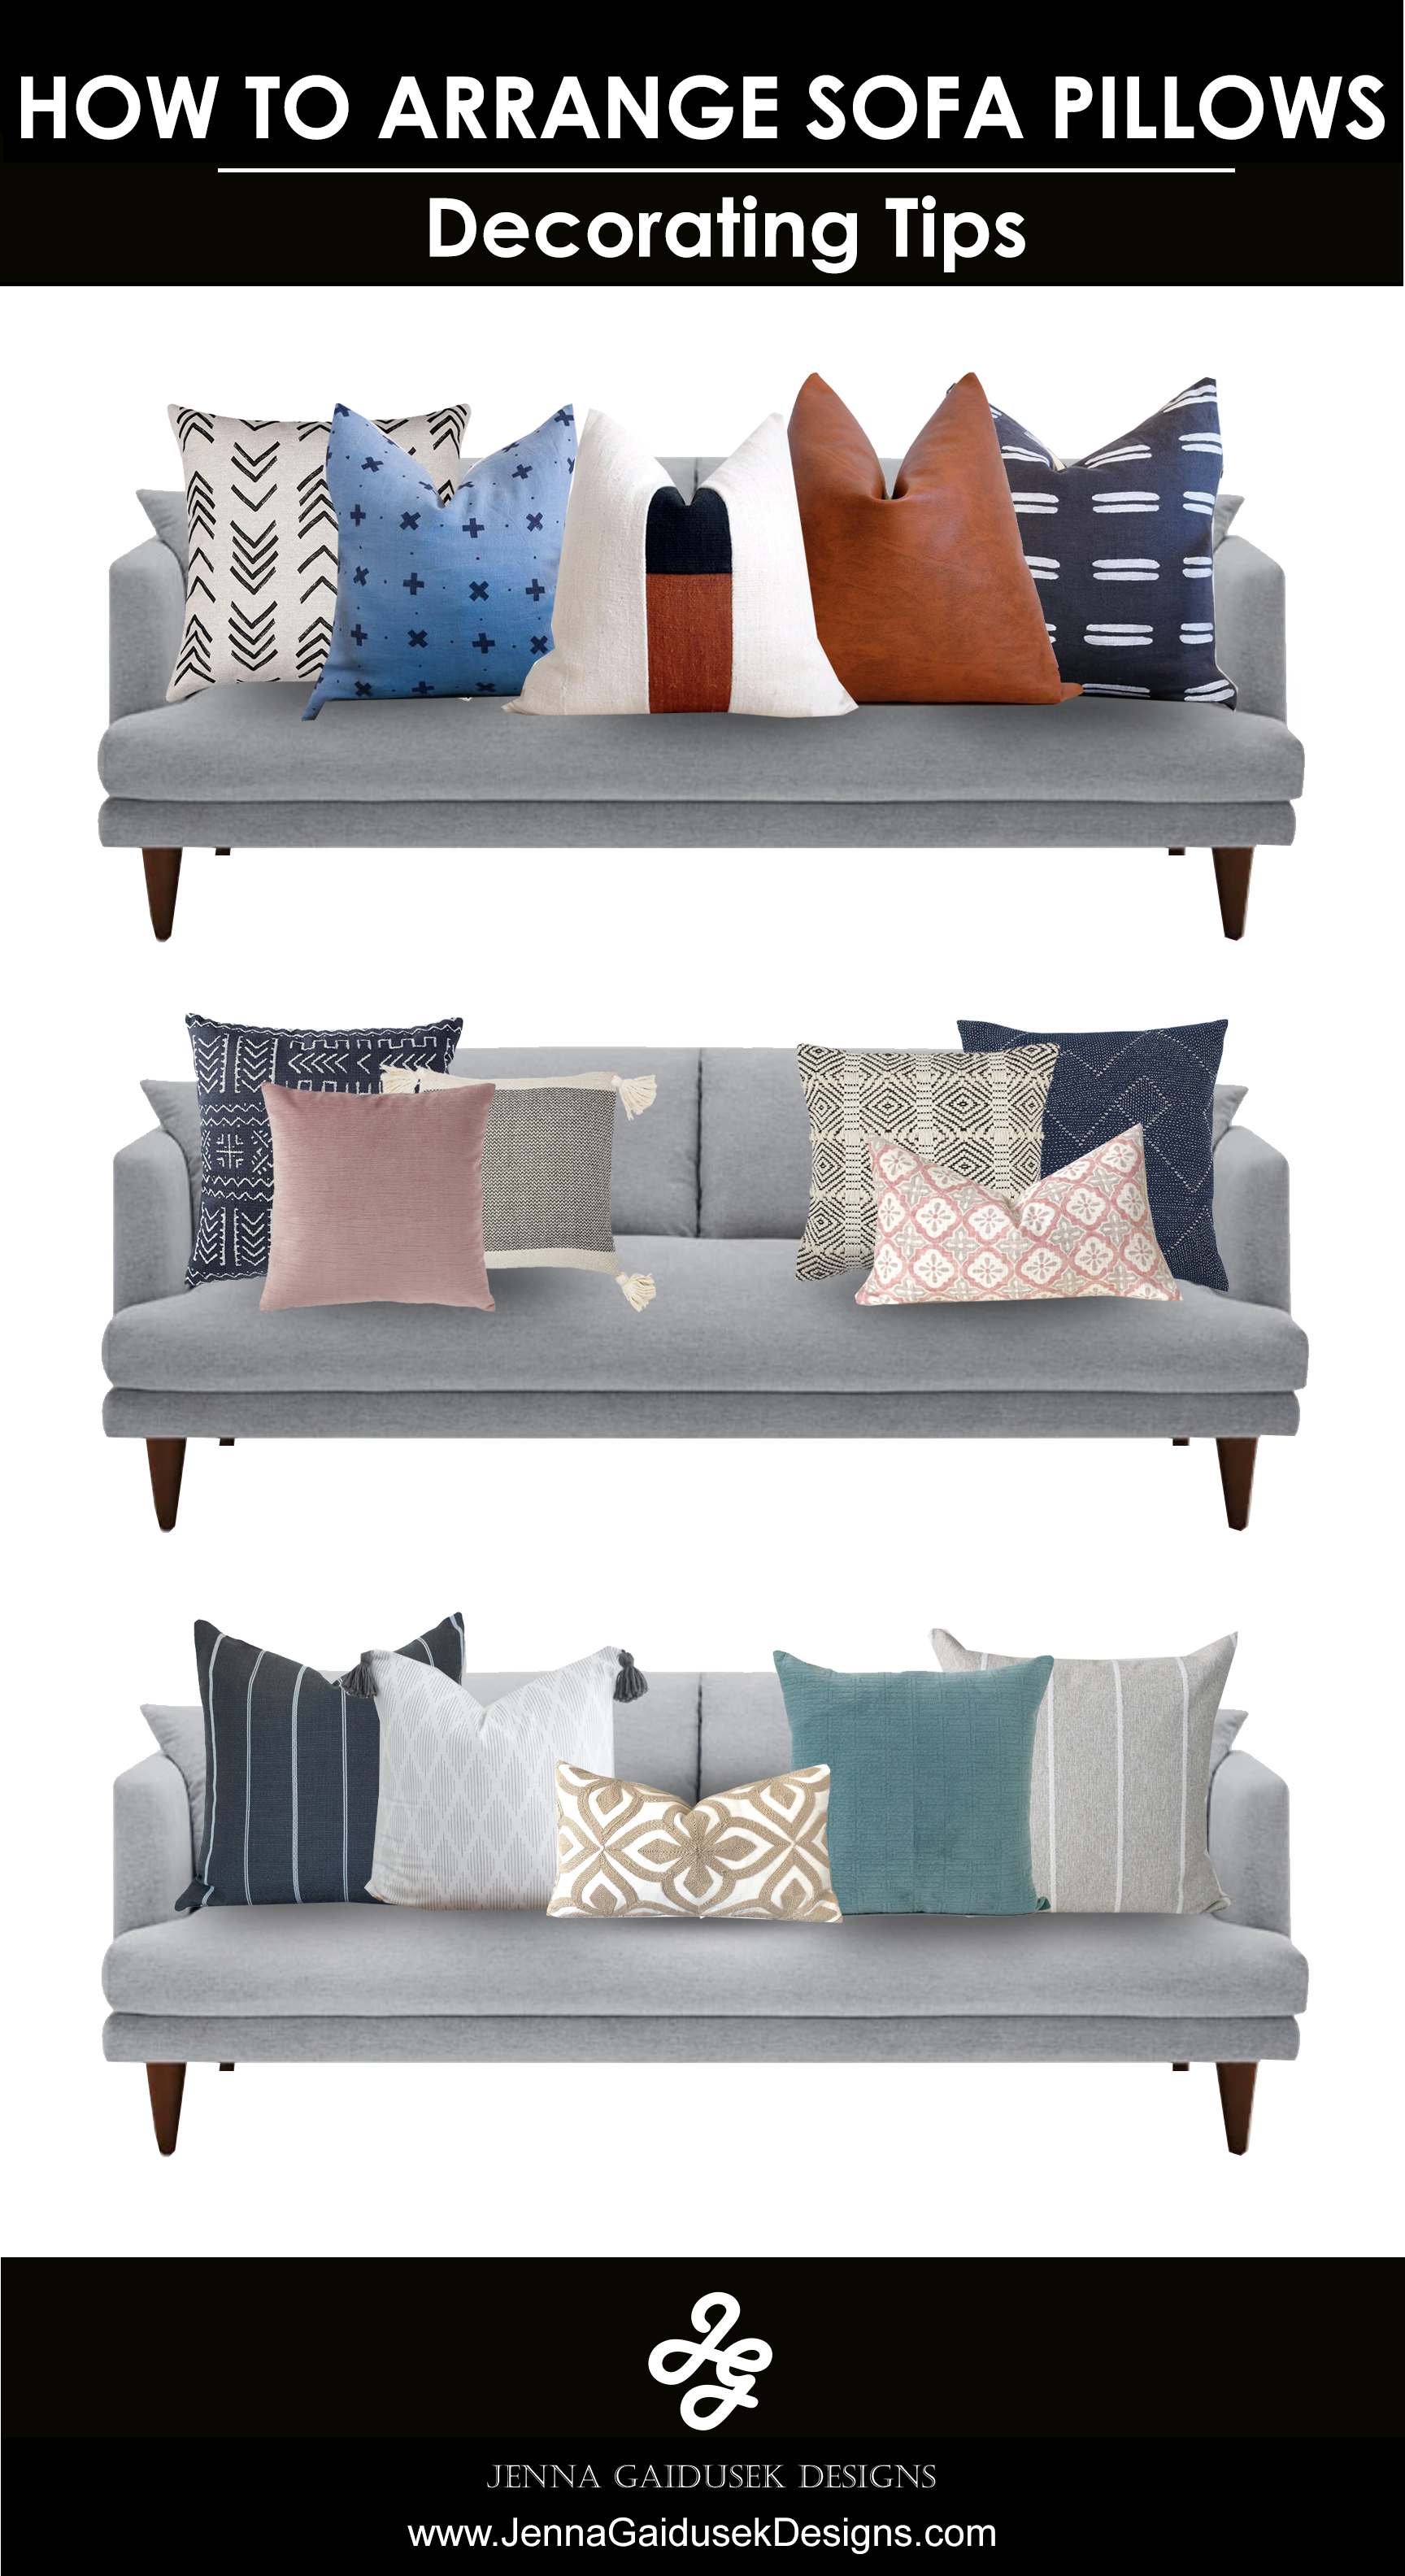 "Choose a medium sized print and pair it with a solid and large pattern pillow.  Mix textures like velvet, cotton, mud cloth, woven knits, faux fur faux leathers, etc.  Use various sized pillows to get this look, 22-24"" outer pillows, 1-20"" middle pillows  18"" or lumbar front pillows. #pillows #howtodecorate #coastalpillows #modernfarmhousepillows #mudclothpillows #mfh"